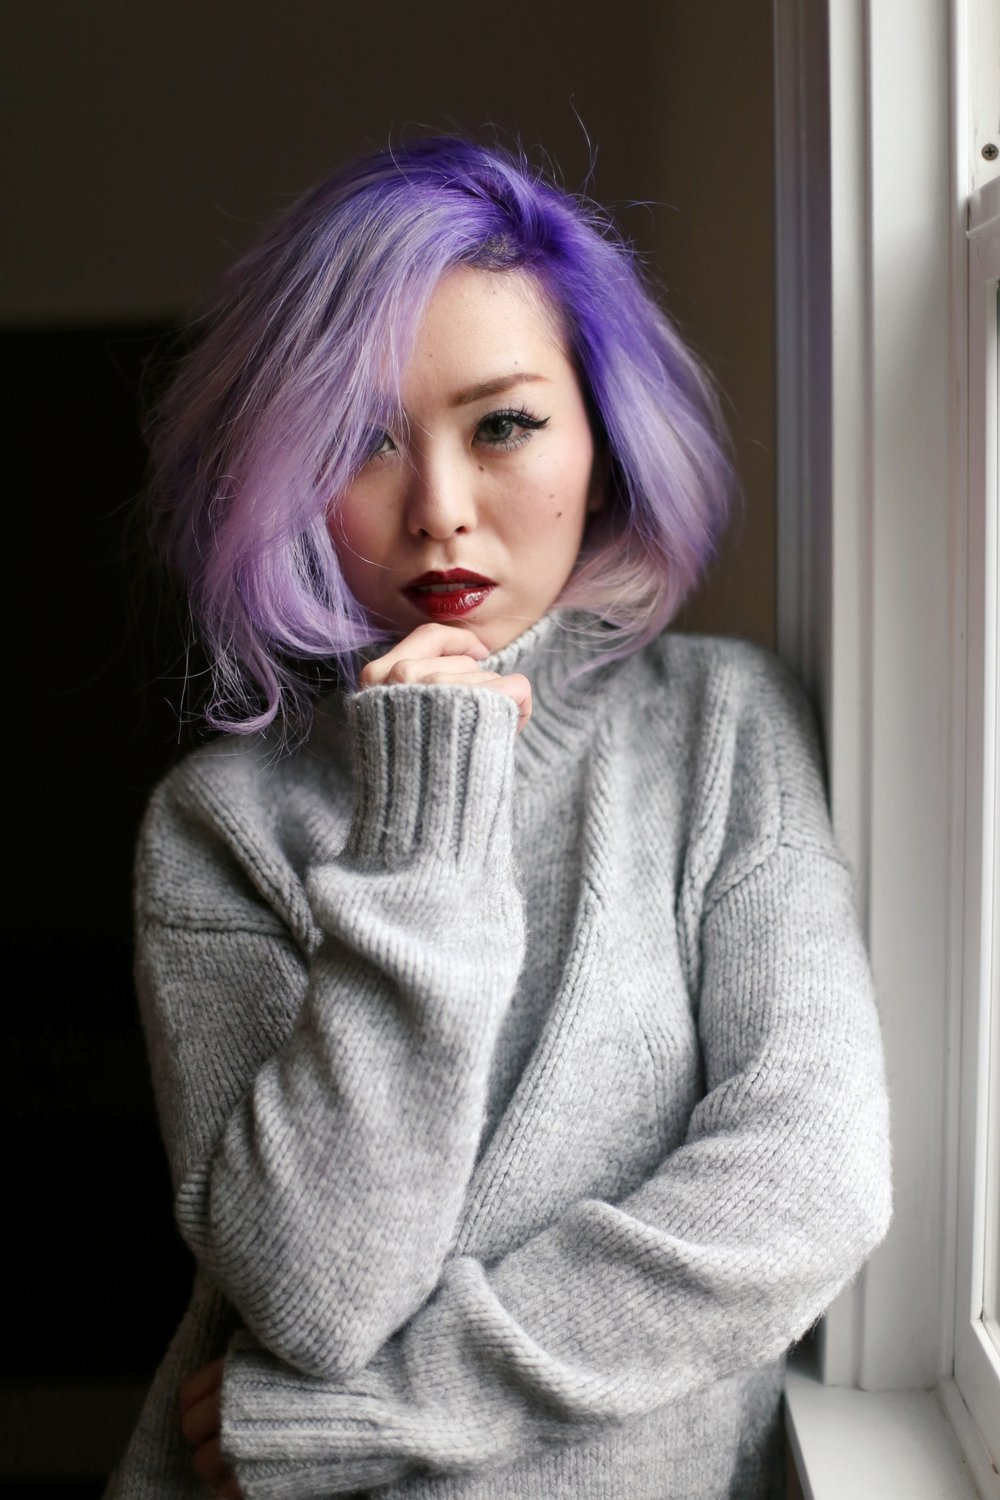 Boudoir Photo-black and white photography-sweater weather-turtle neck sweater-black lingerie-dark lipstick-japanese-Aika's Love Closet-Seattle model-Seattle Style blogger-Lavender Hair-colored Hair-Mermaid Hair-zara Sweater